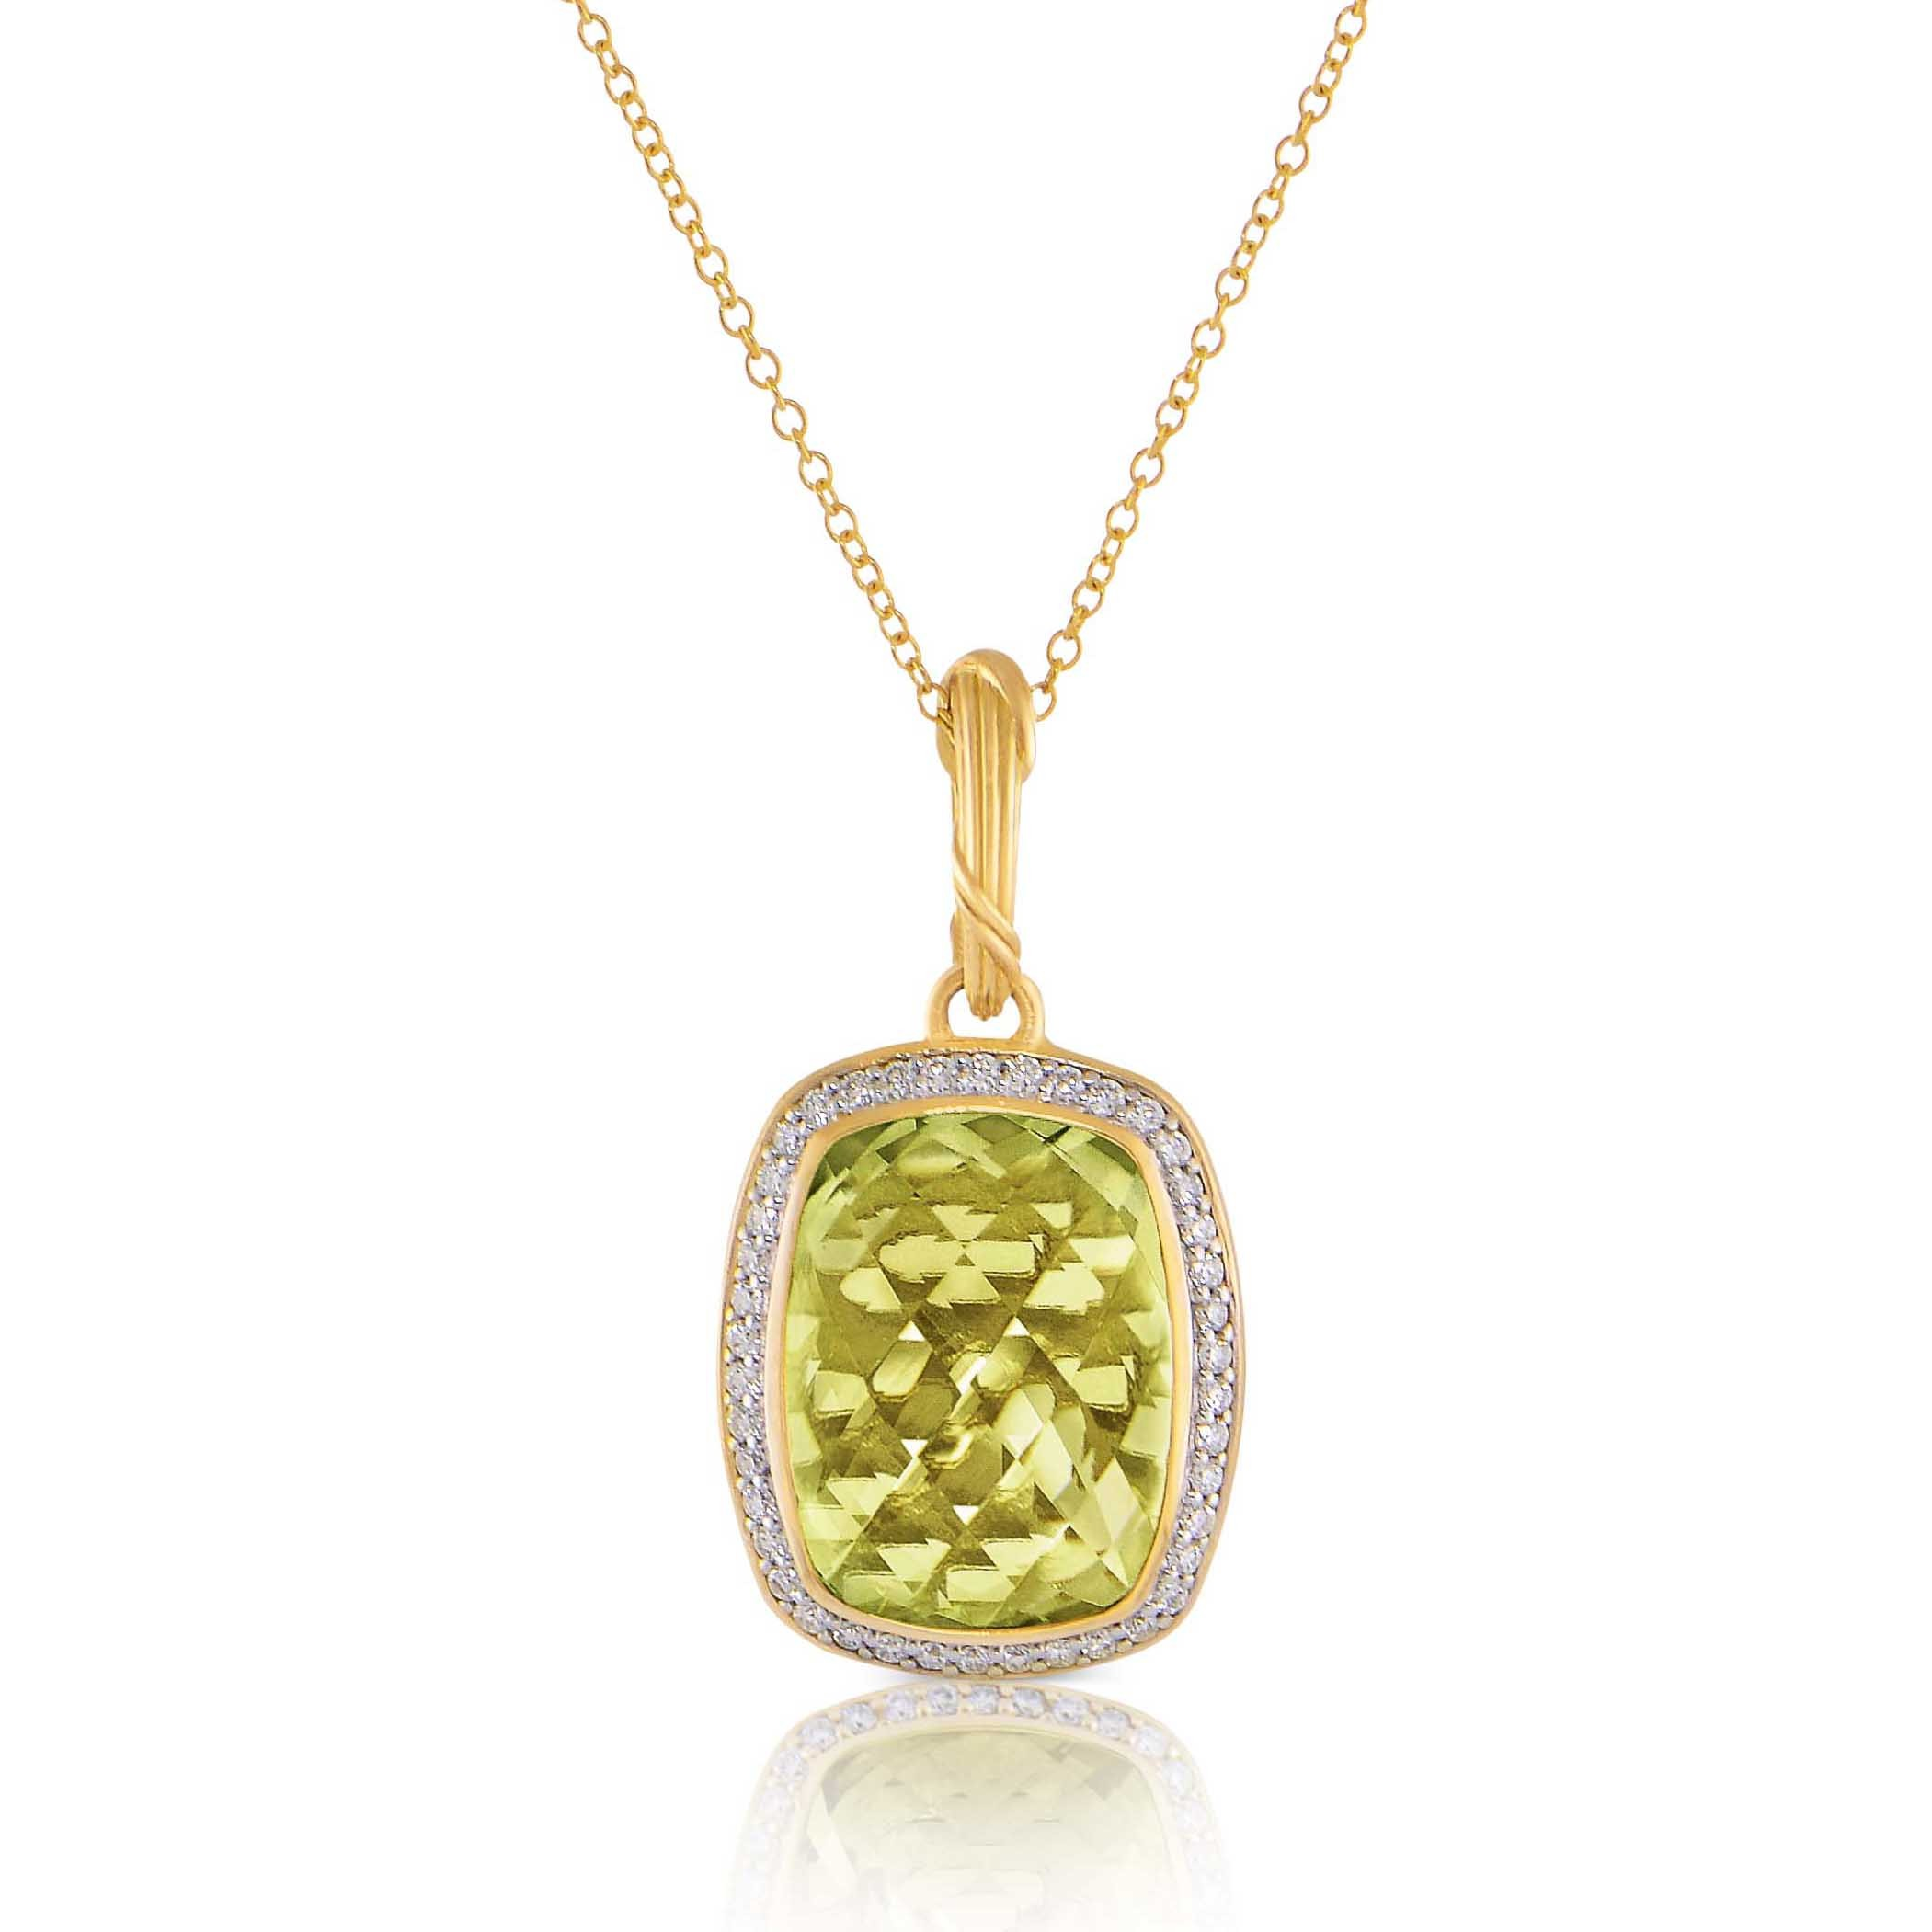 Fantasies Prasiolite Halo Pendant Necklace in diamonds and 18K Gold